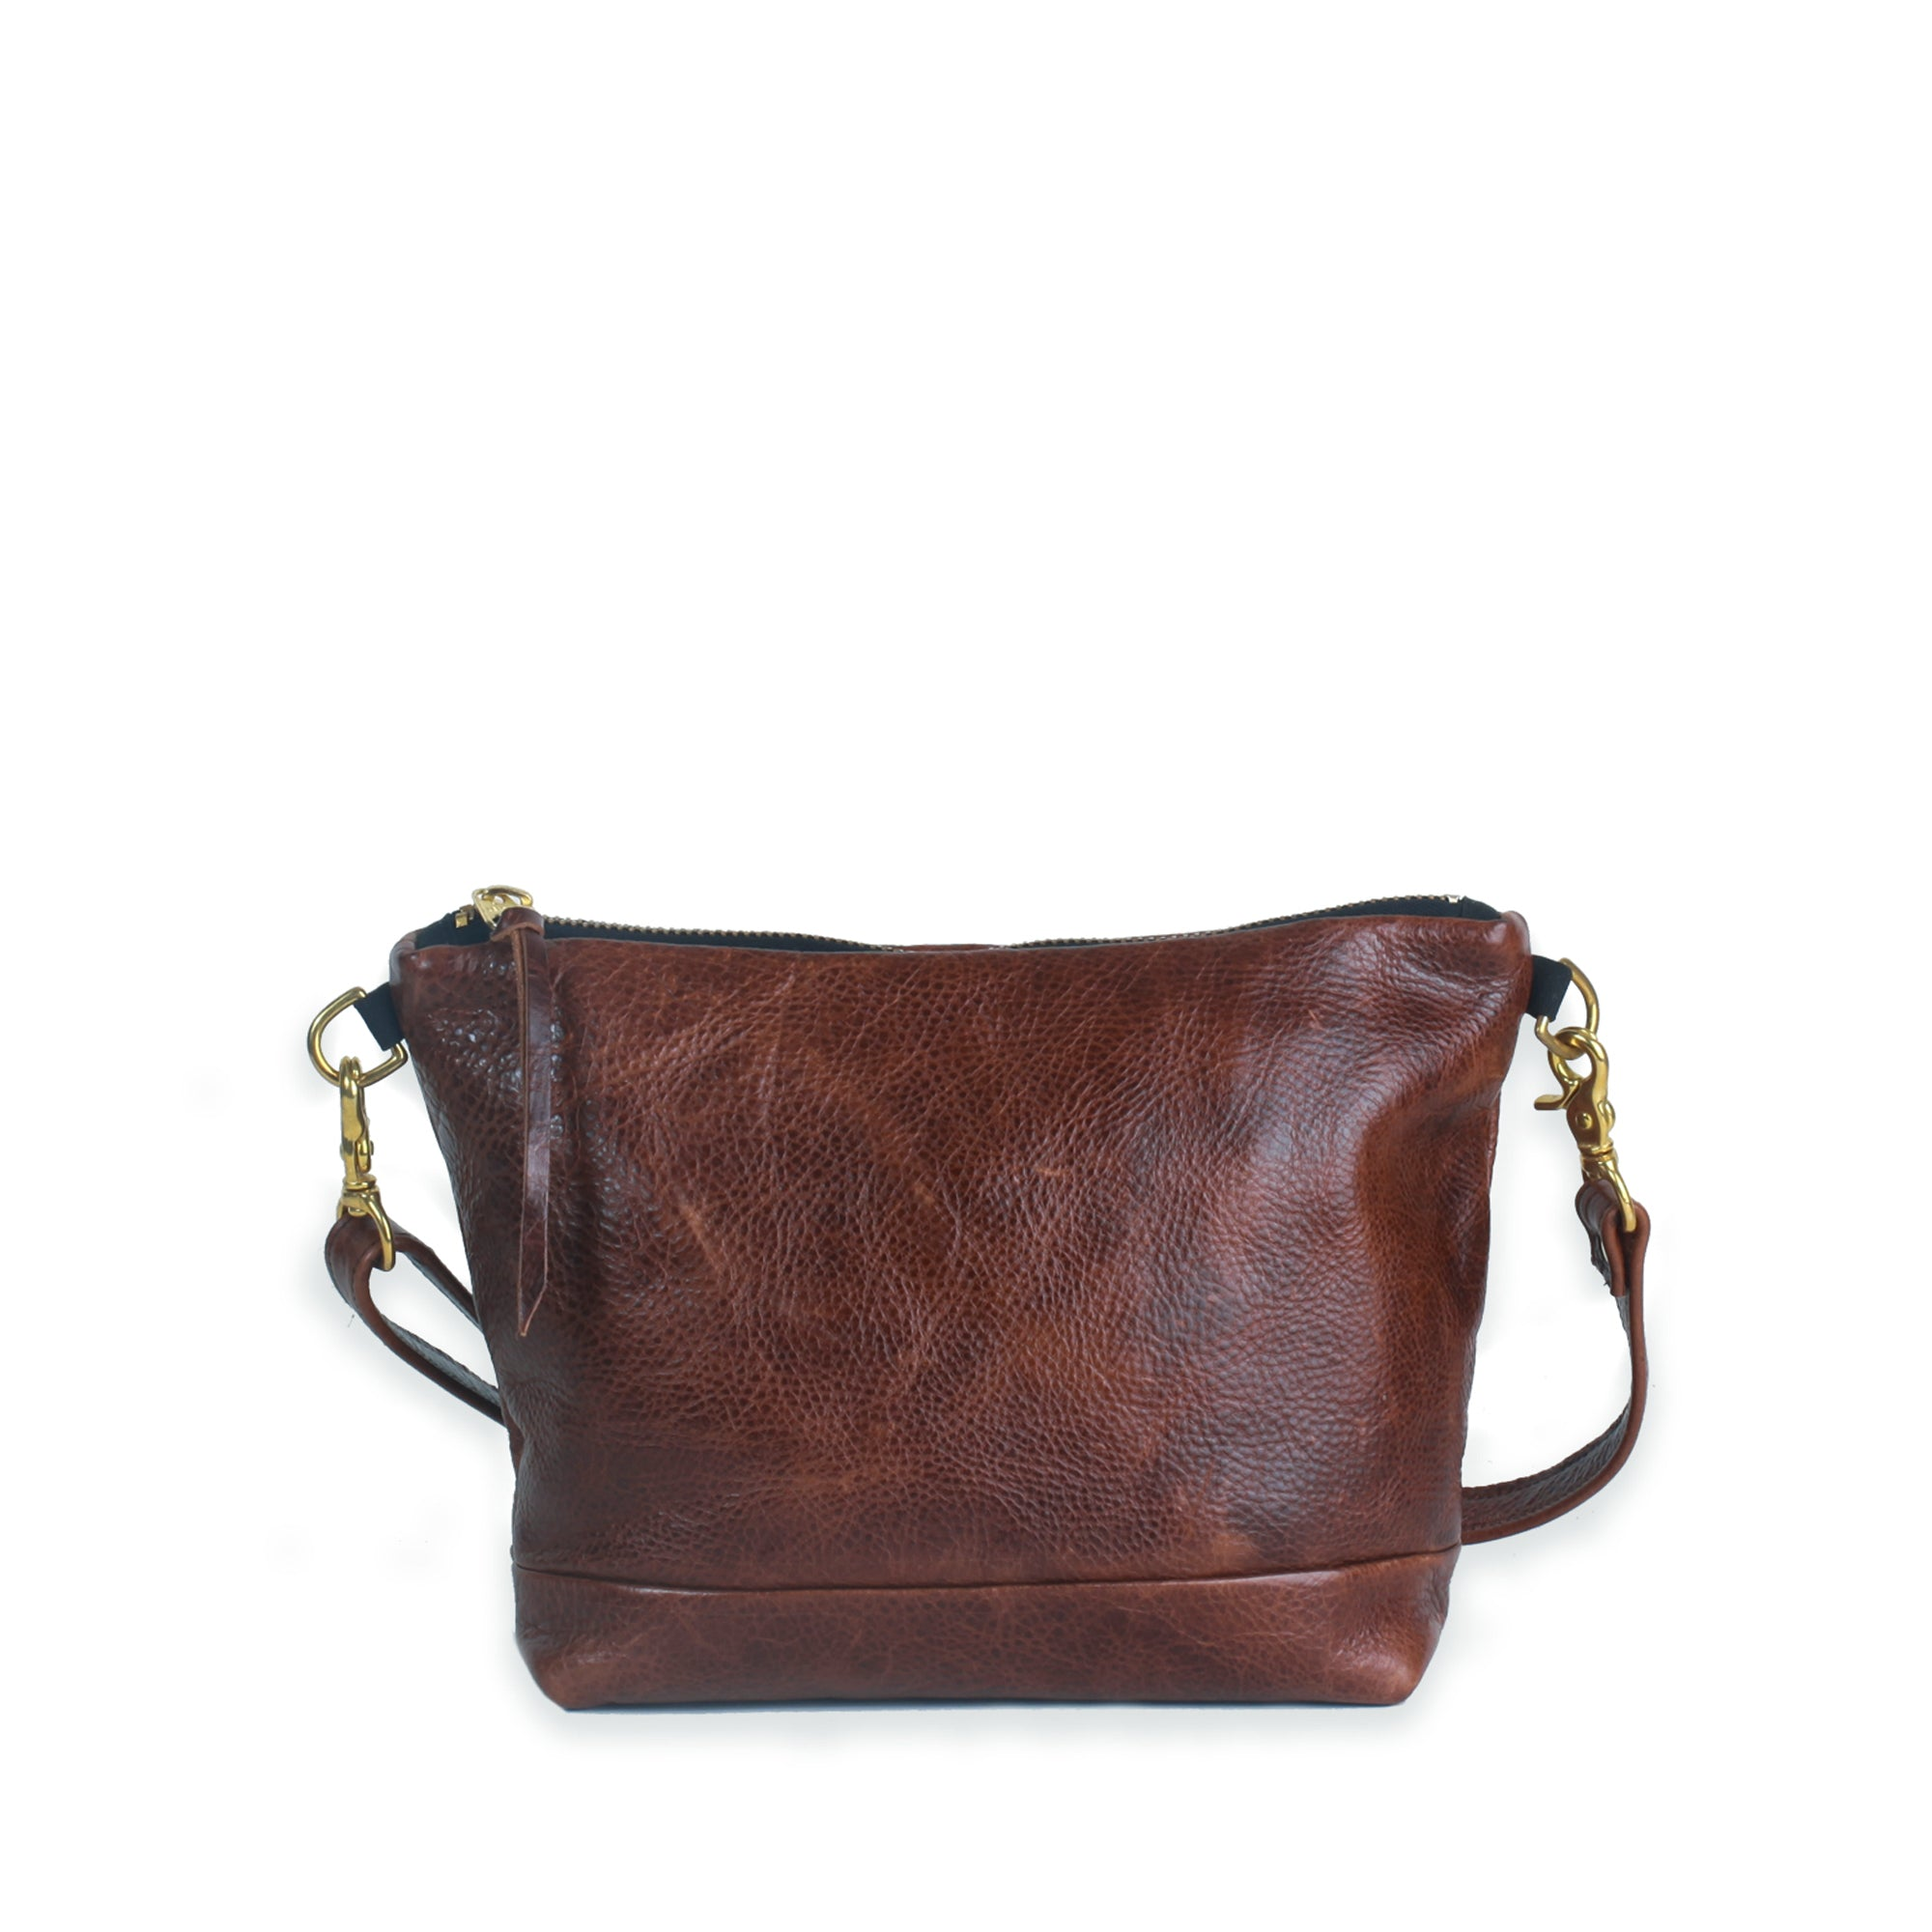 The Avery Messenger - Rodeo Brown | rais case img1